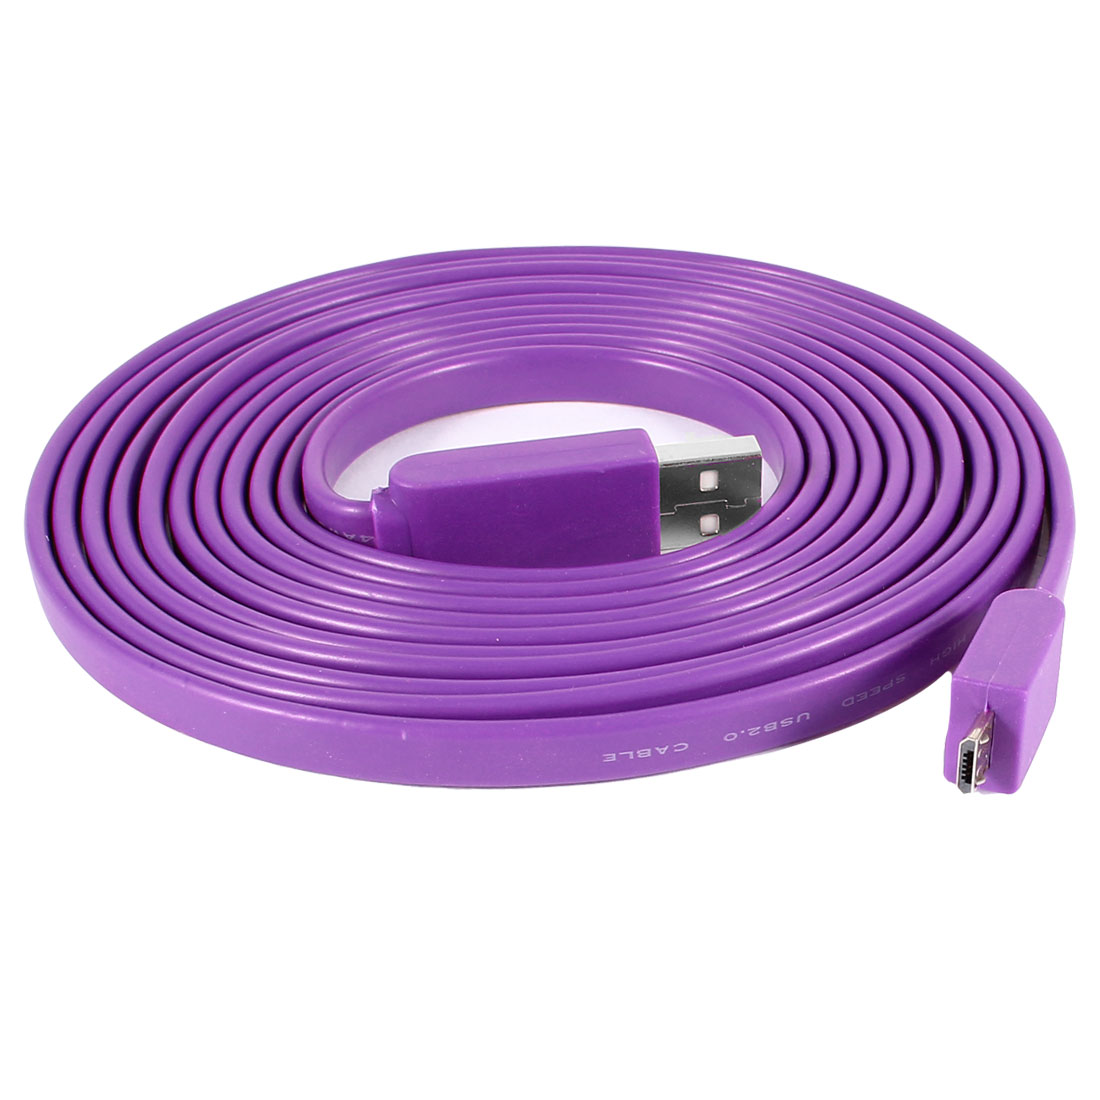 9.8ft USB 2.0 Type A Male to Micro USB Male Adapter Flat Cable Cord Purple